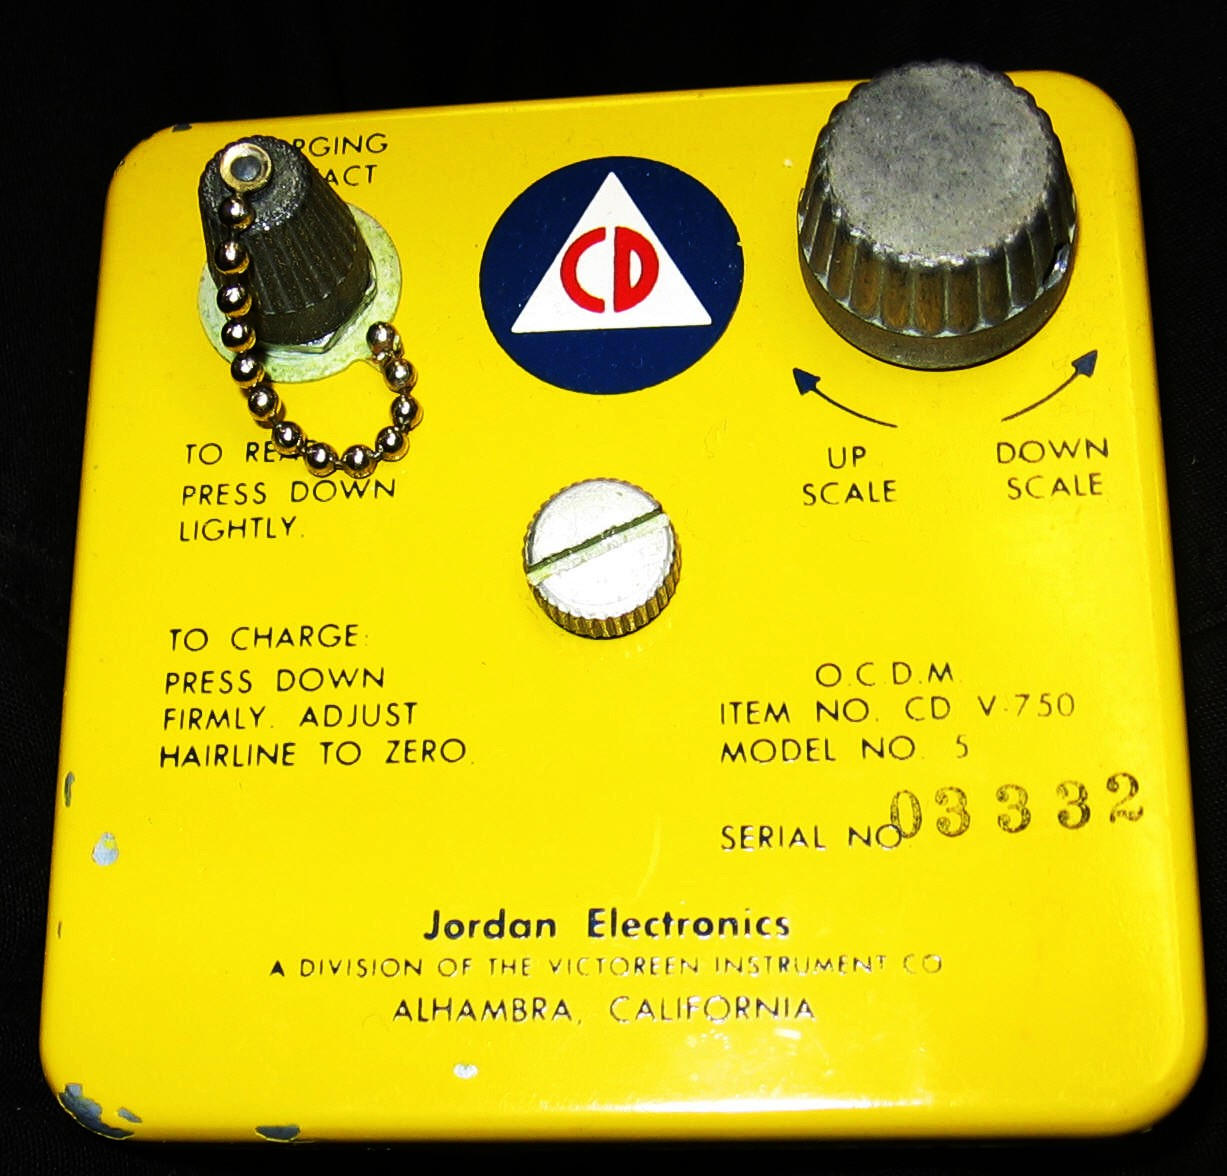 Radiological Meter Page Schematic For Victoreen Cd V700 Geiger Counter The V 750 Is A Dosimeter Charger It Can Charge Lot Of Dosimeters So Get As Many You Think Youll Need